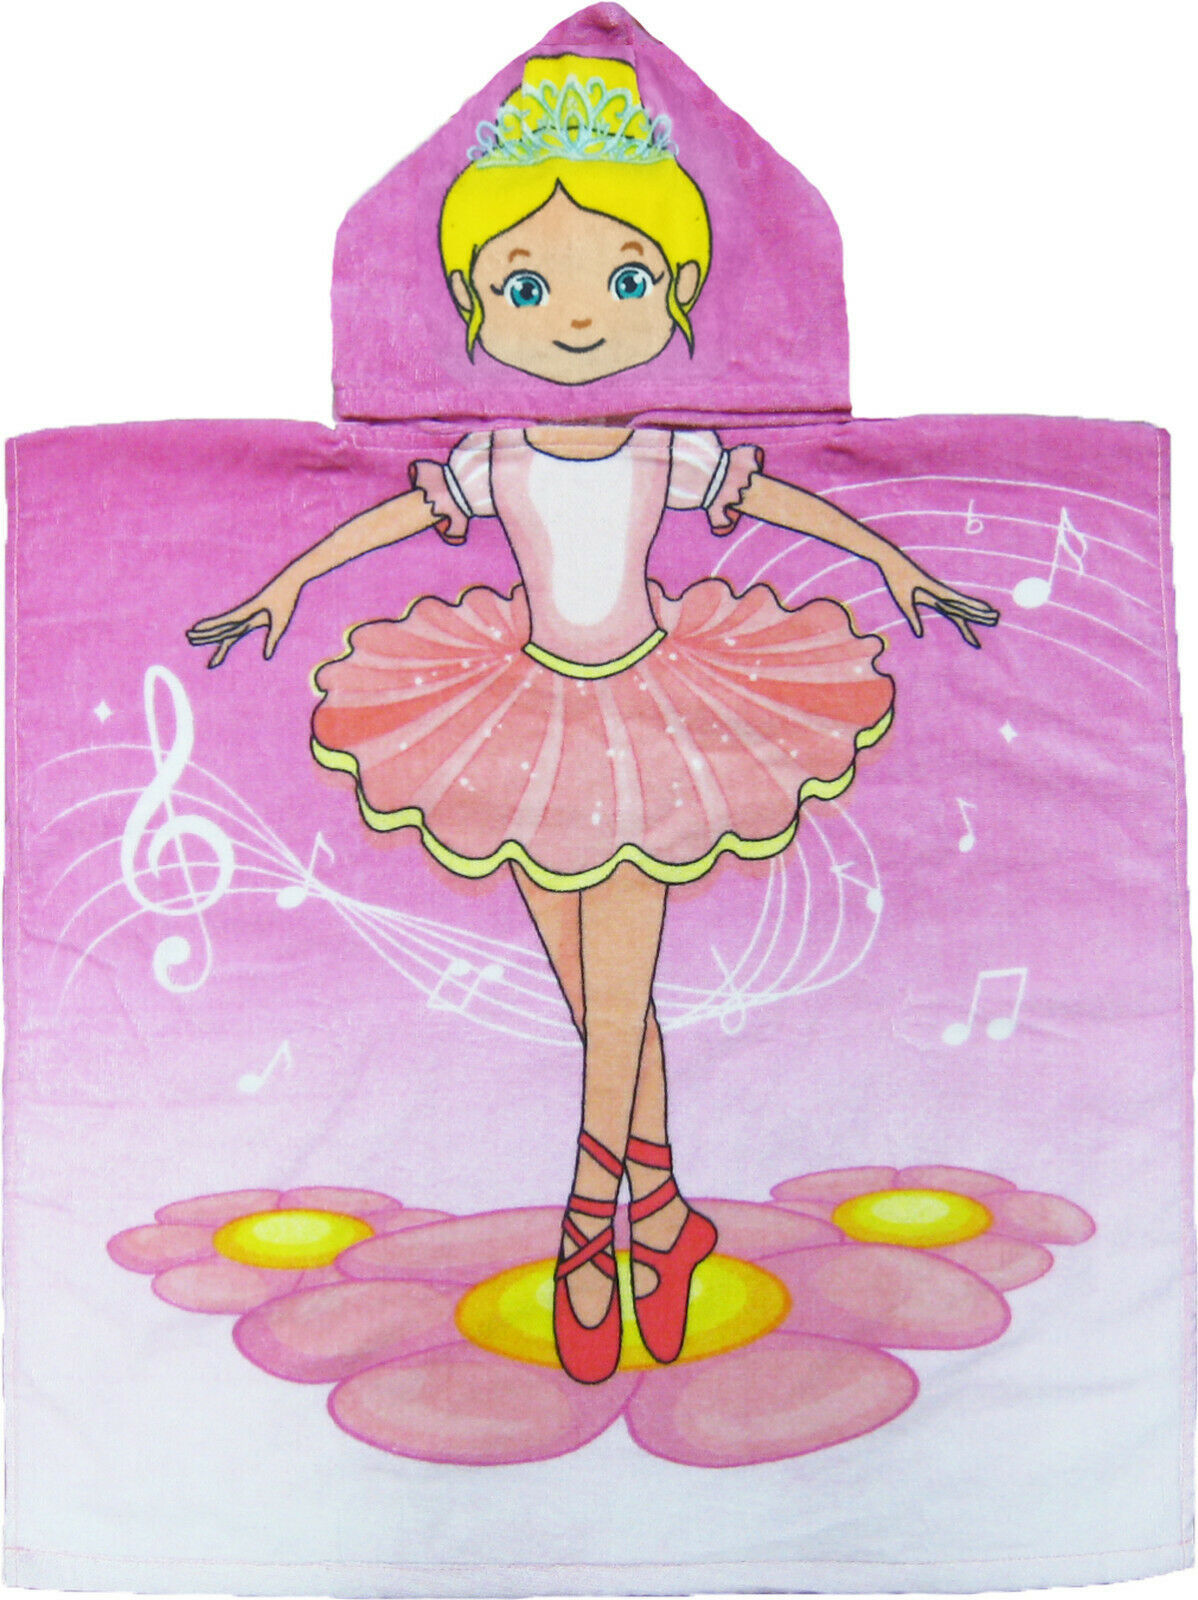 Primary image for Ballerina Hooded Beach Poncho Towel Kids Bath Costume Cotton Pool Cover Up Robe